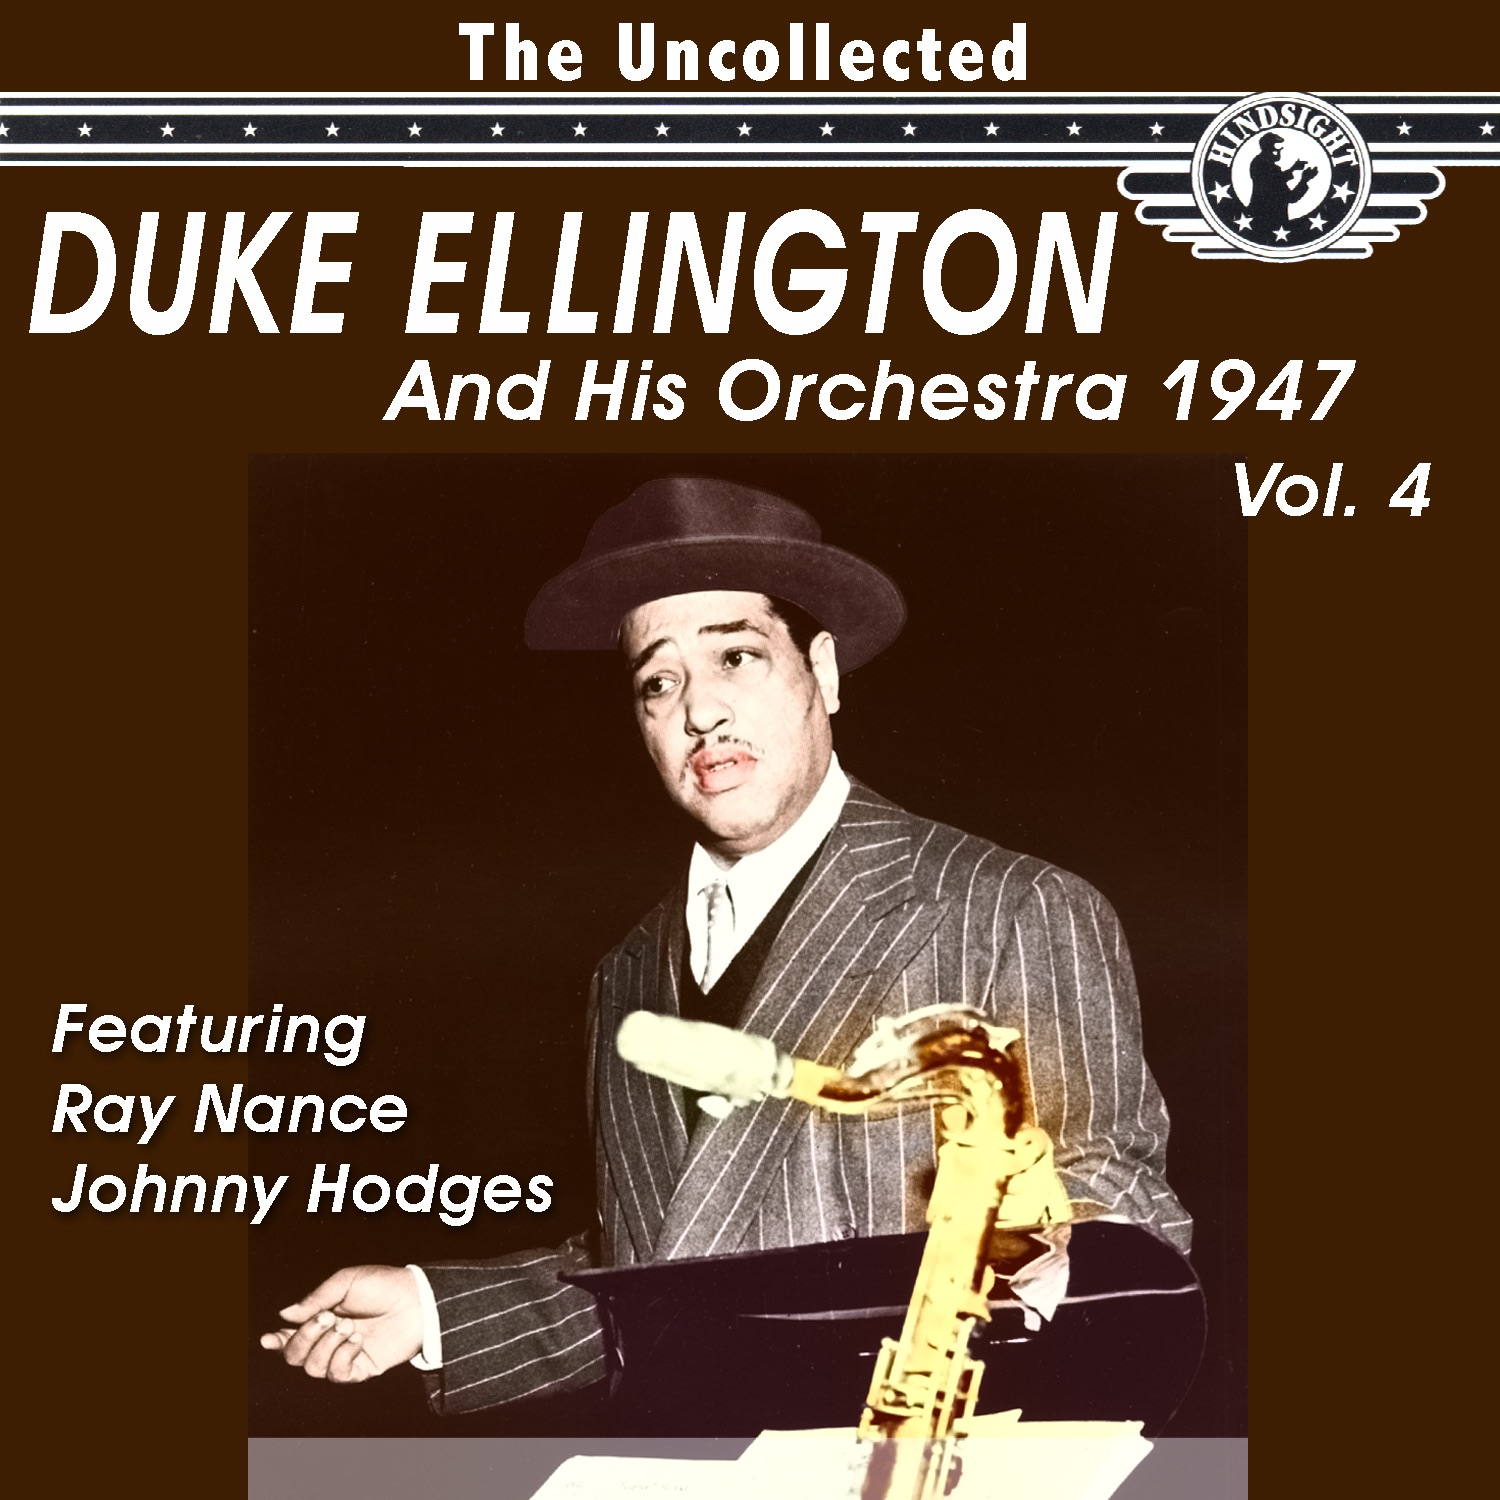 The Uncollected Duke Ellington and His Orchestra 1947, Vol. 4 (Digitally Remastered)